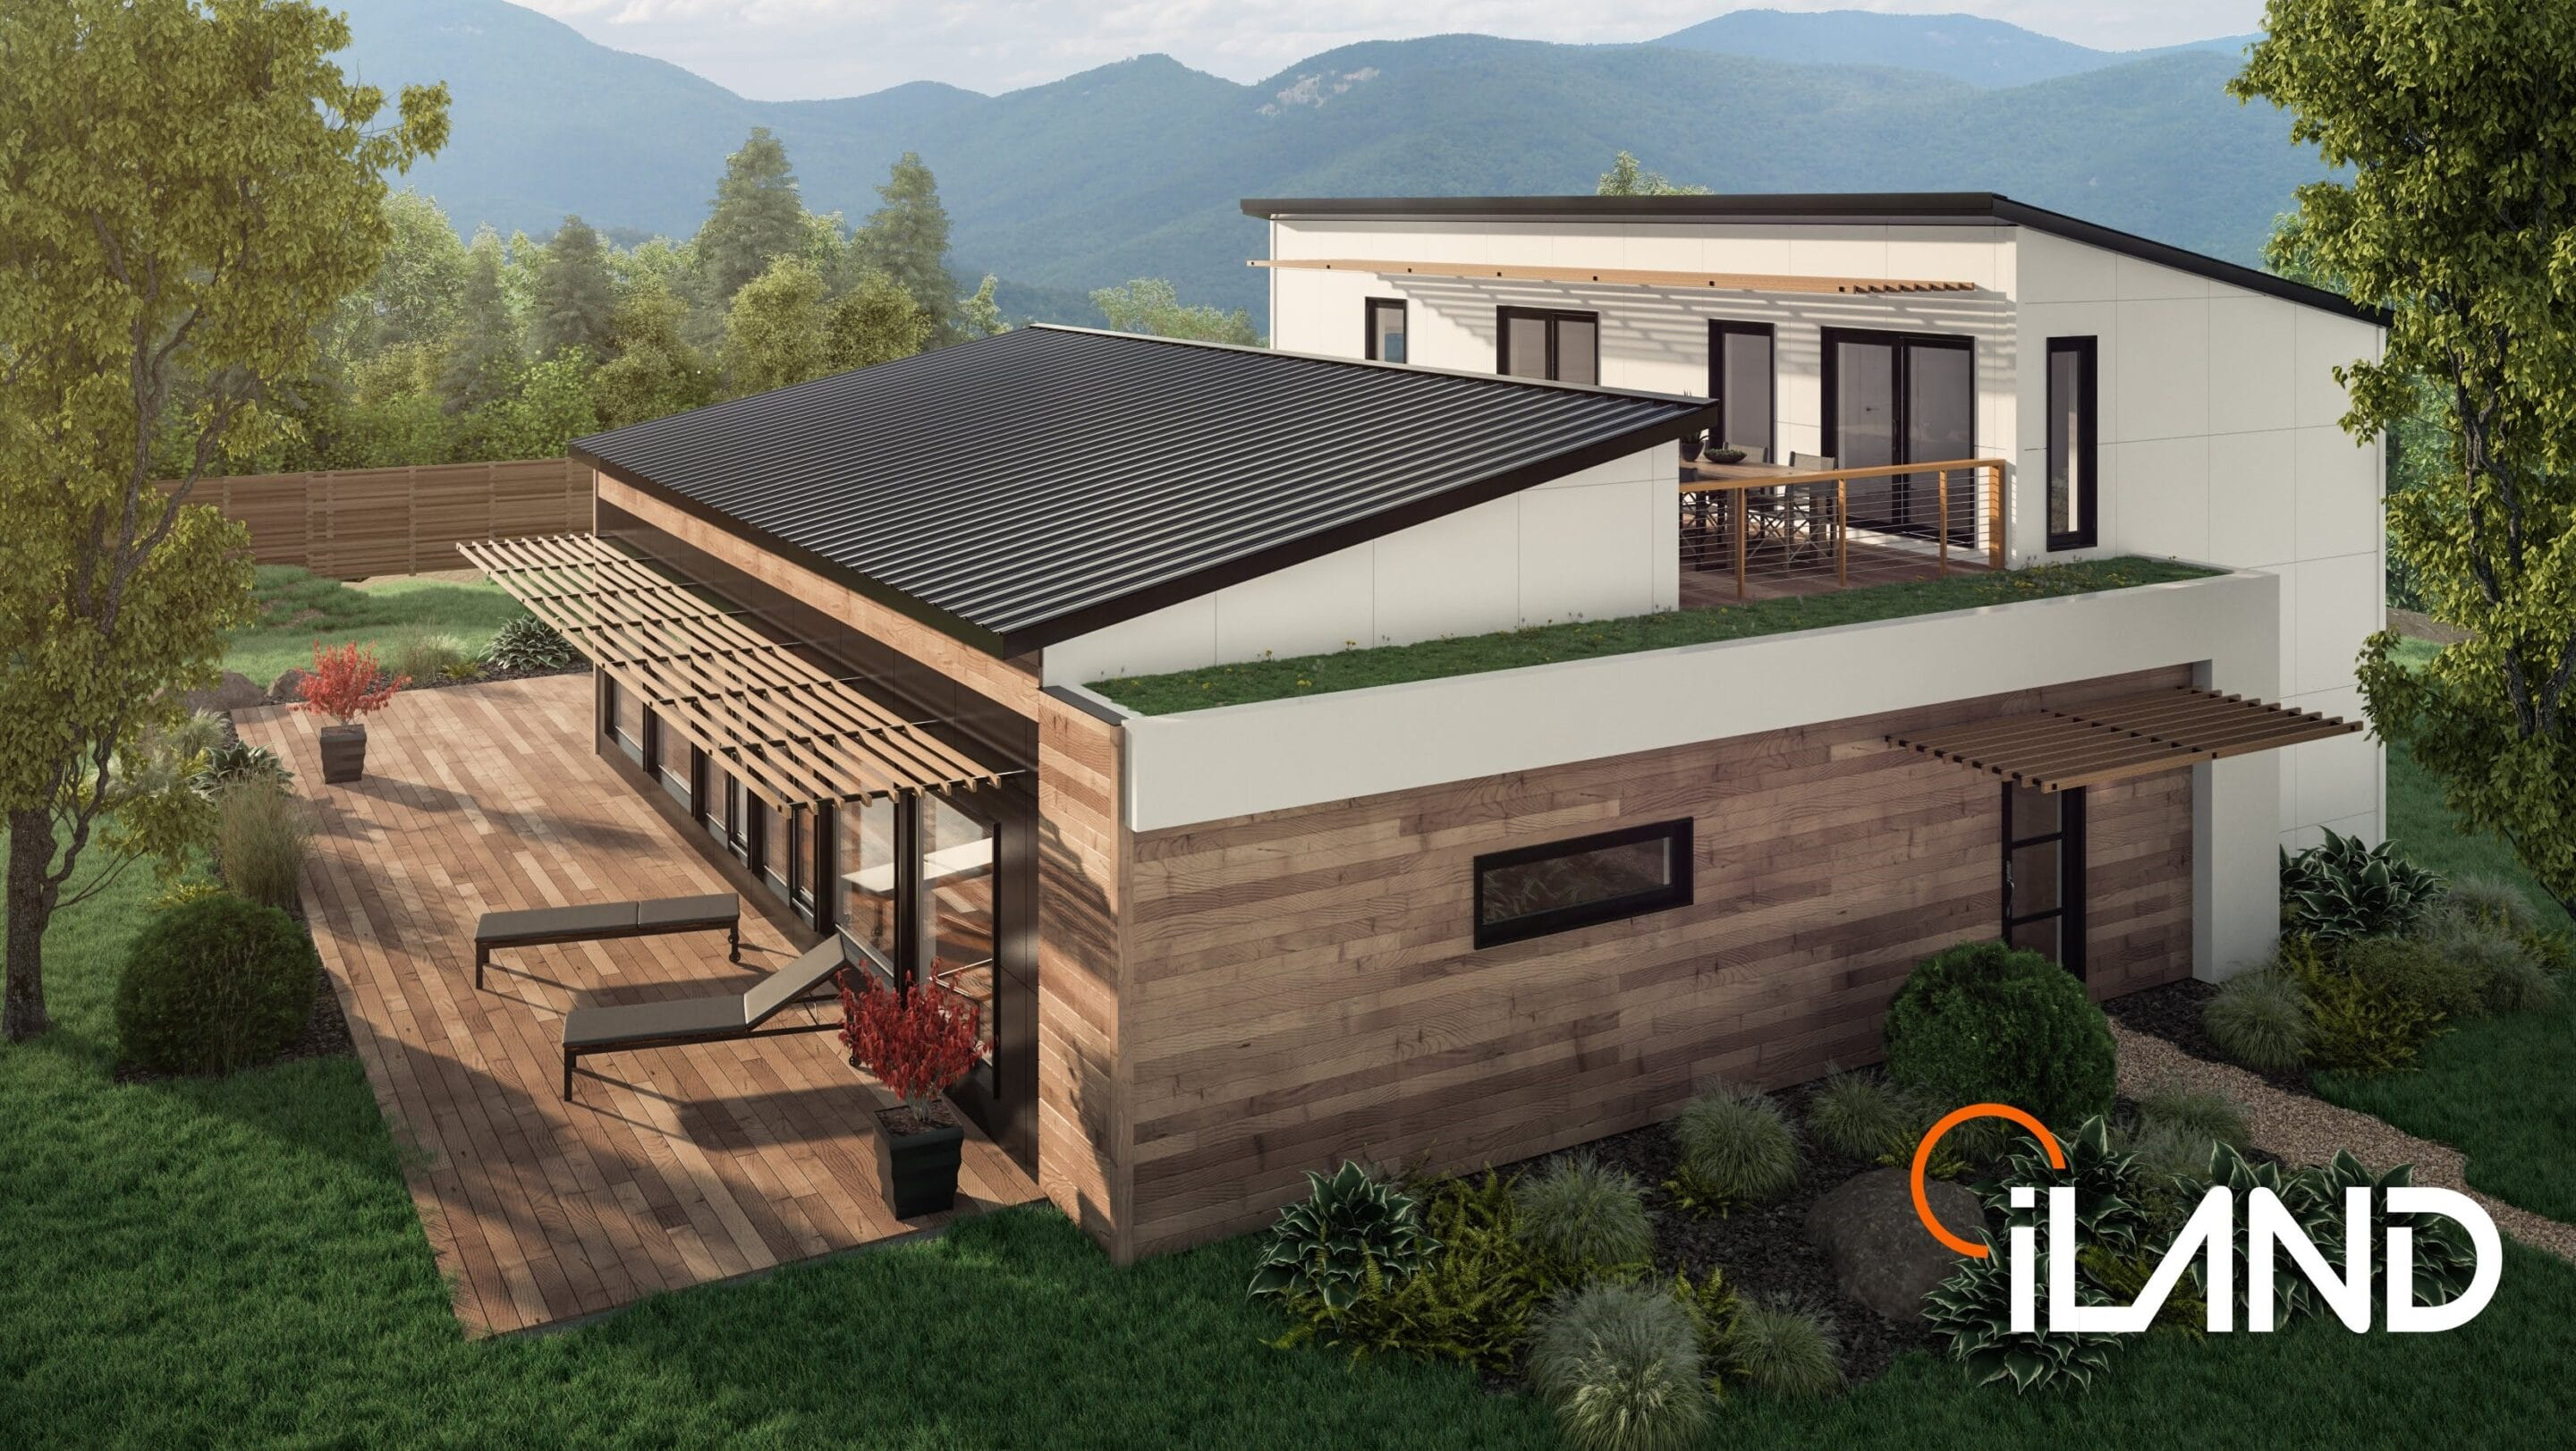 Two storey modular home with intergenerational possibilities